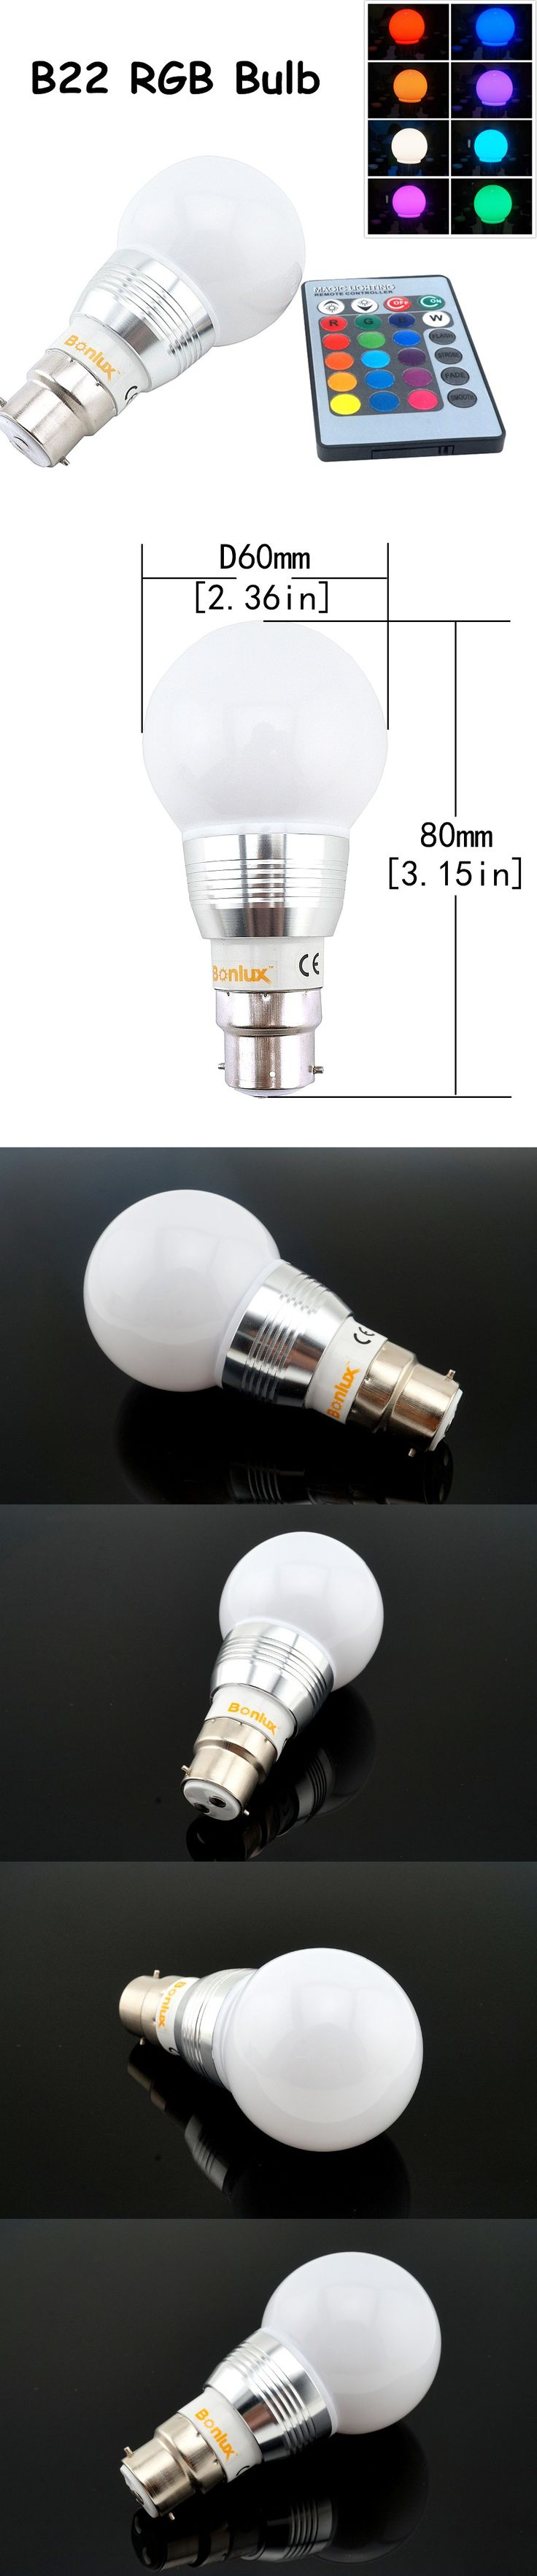 8c8289ecd4e8cc66b6044e96fc108ab1--spotlight-bulbs-rgb-led Wunderbar Led Mr11 Gu4 Warmweiss Dekorationen